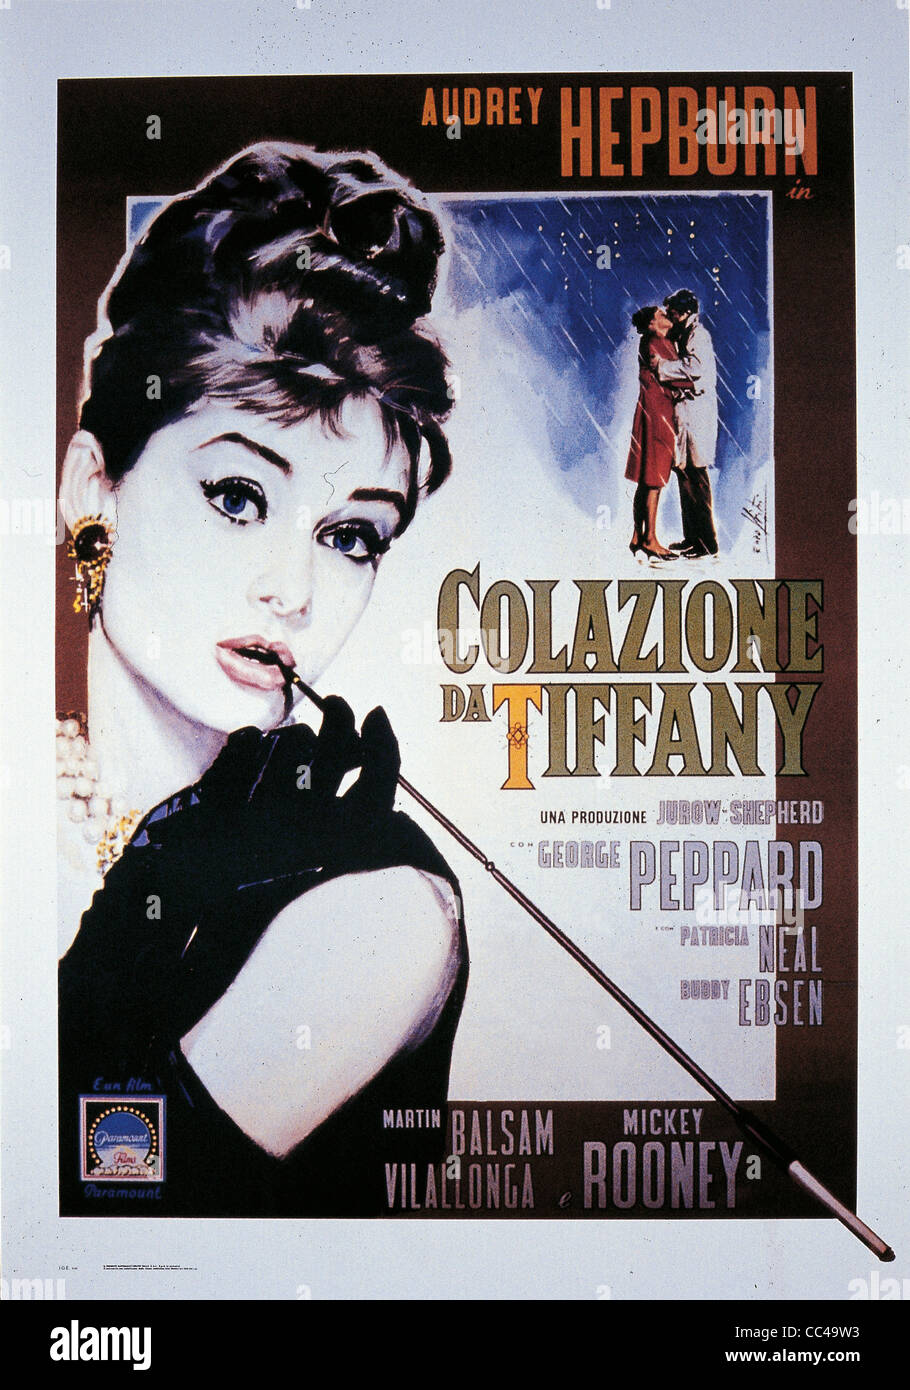 Cinema: Breakfast At Tiffany's Poster 1961 Directed By Blake Edwards - Stock Image